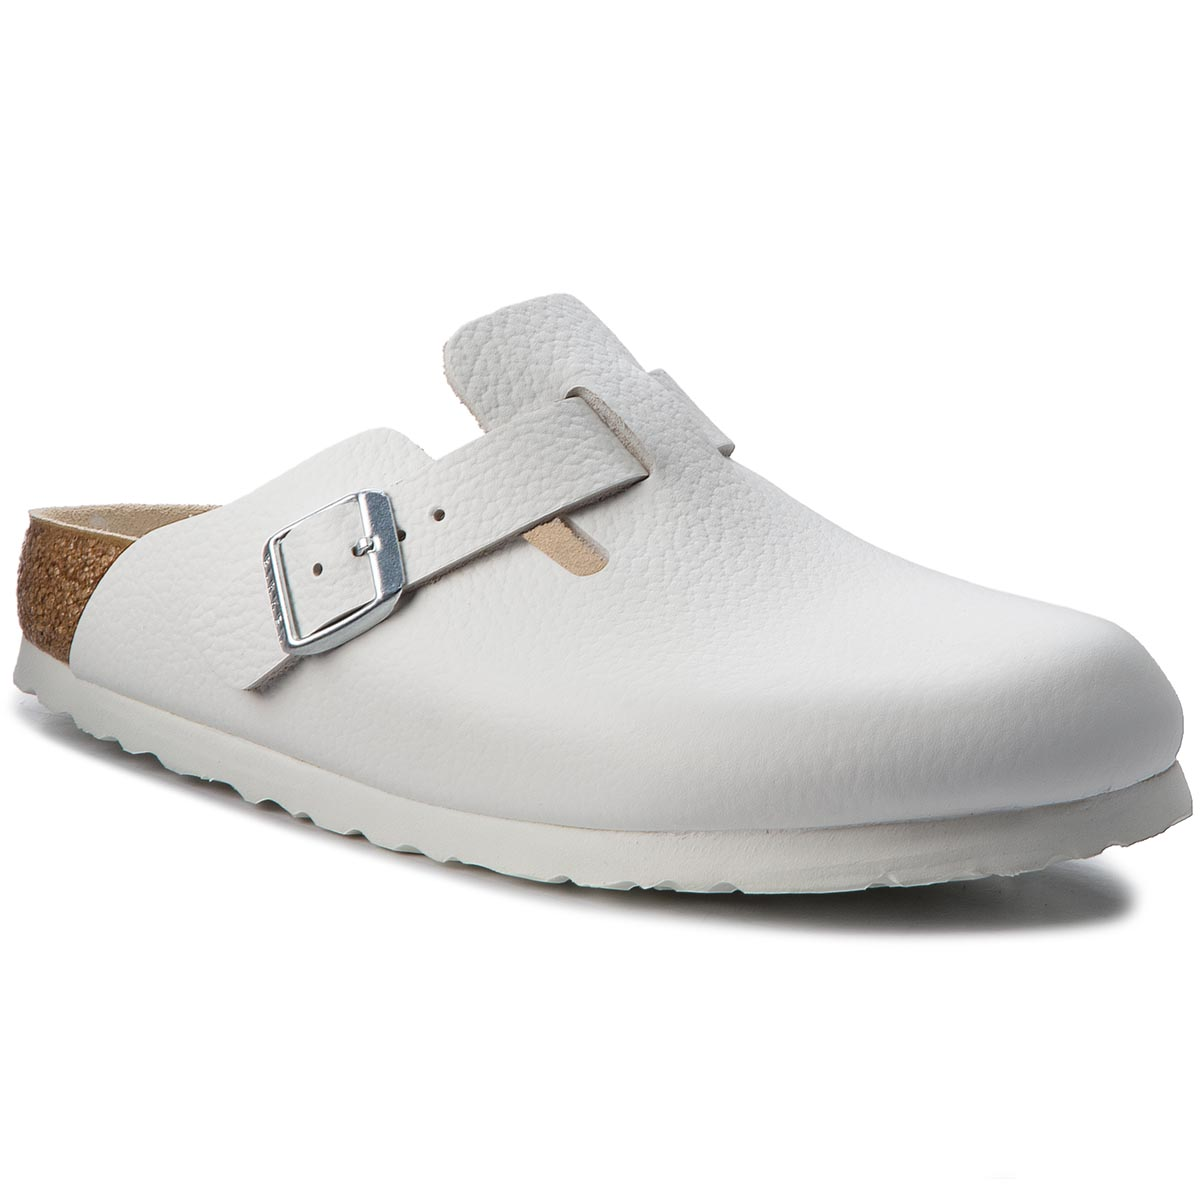 Klapki BIRKENSTOCK - Boston Bs 0060133 White